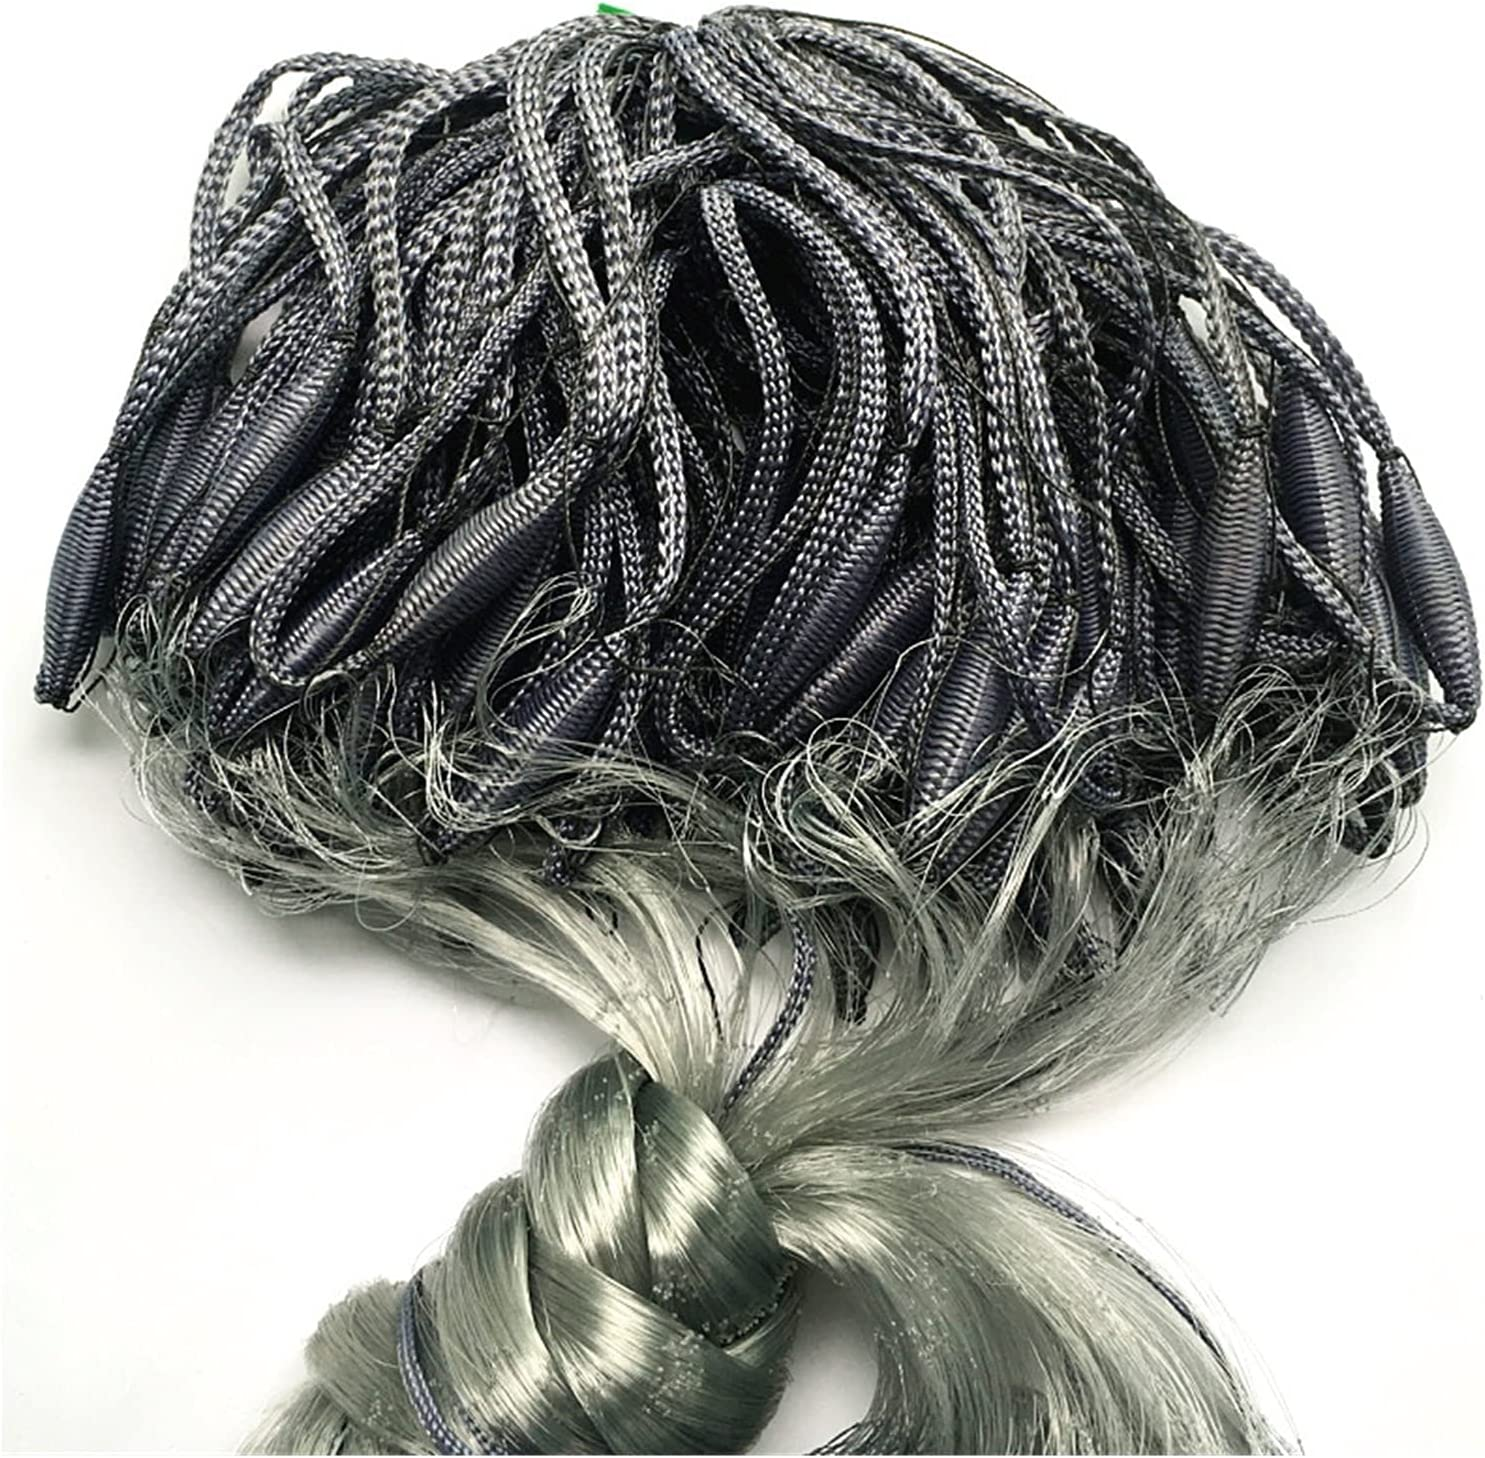 FRSDMY Our shop OFFers the best service Cast Net Gillnet New Orleans Mall 1.8m30m Monofilament Fis Outdoor Sports